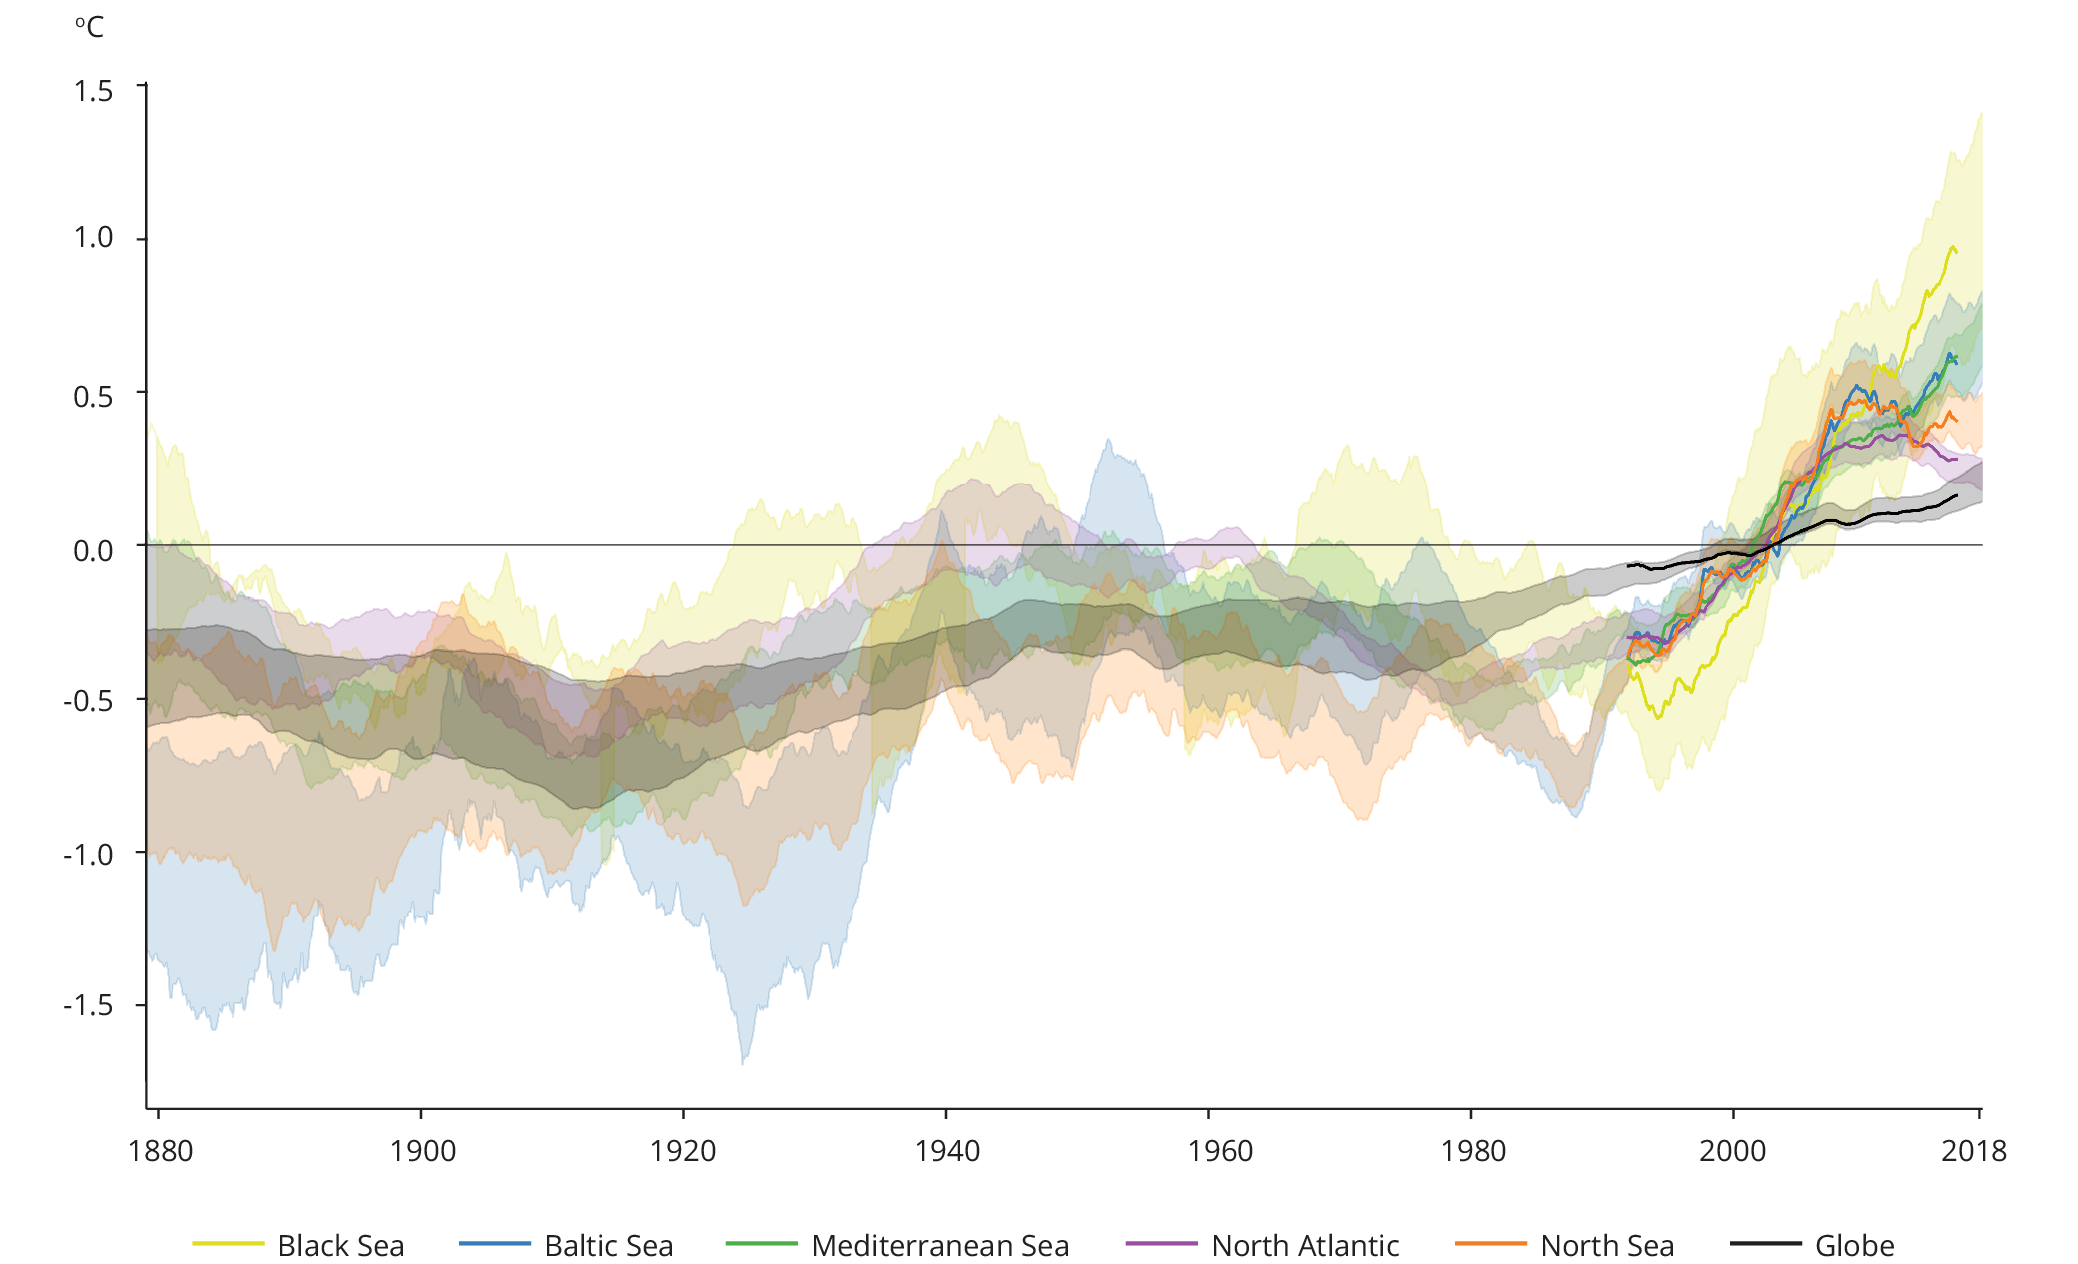 Decadal average sea surface temperature anomaly in different European seas (1870  to 2018)